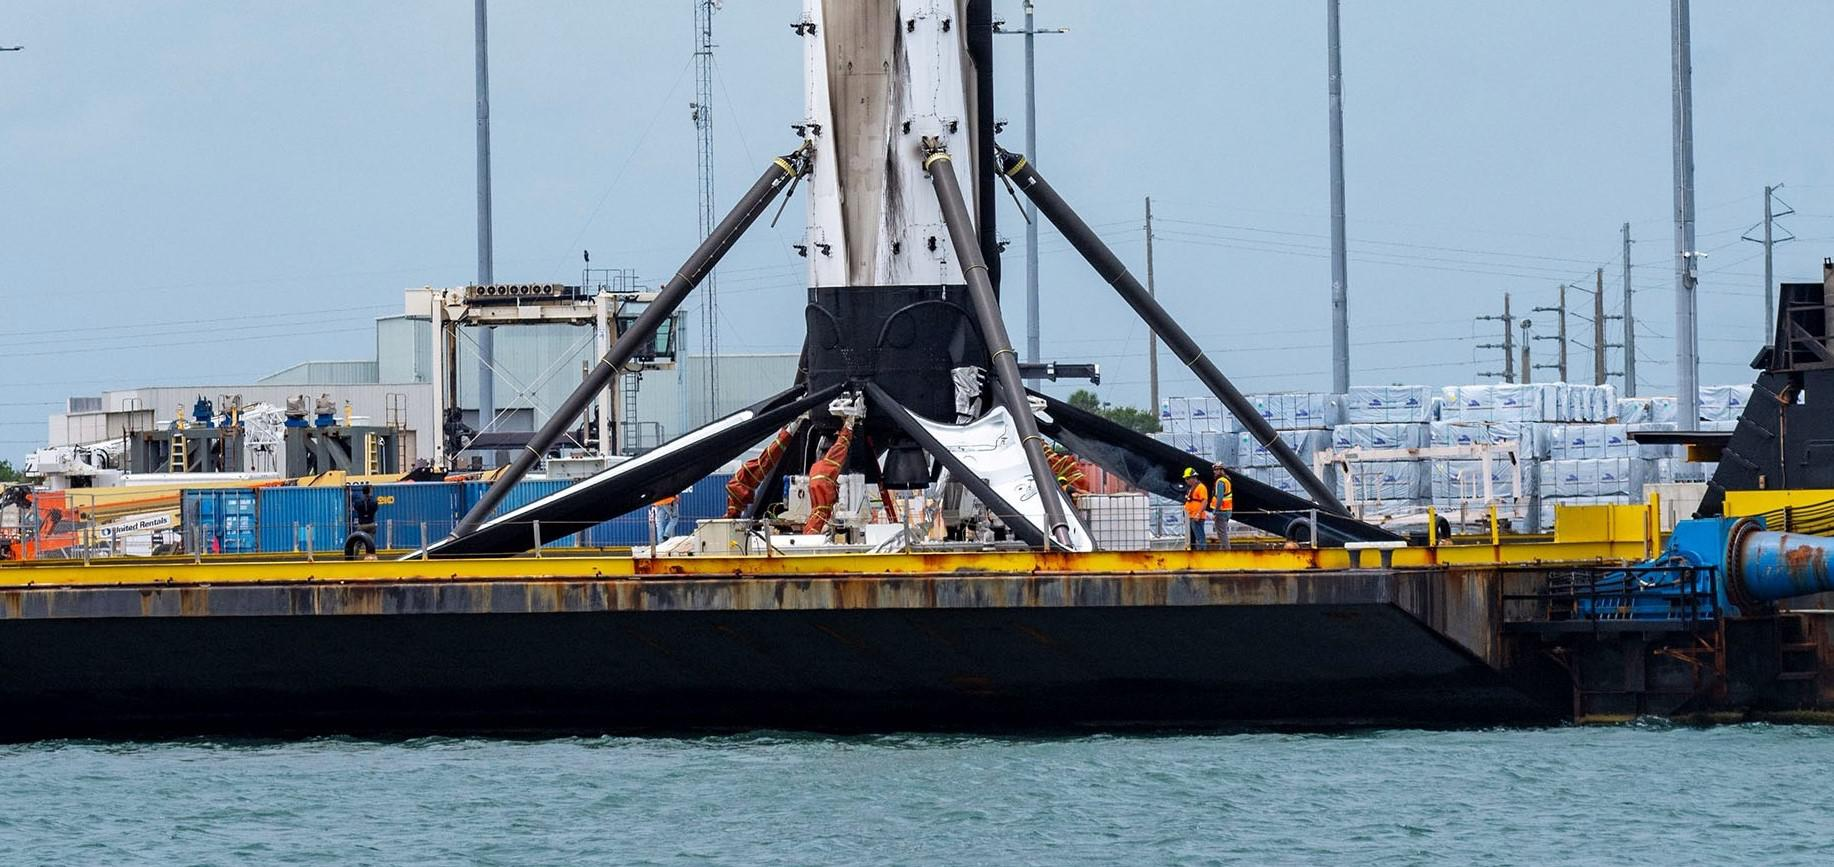 Crew Dragon Demo-2 Falcon 9 B1058 OCISLY recovery 060220 (SpaceX) 4 crop 2 (c)